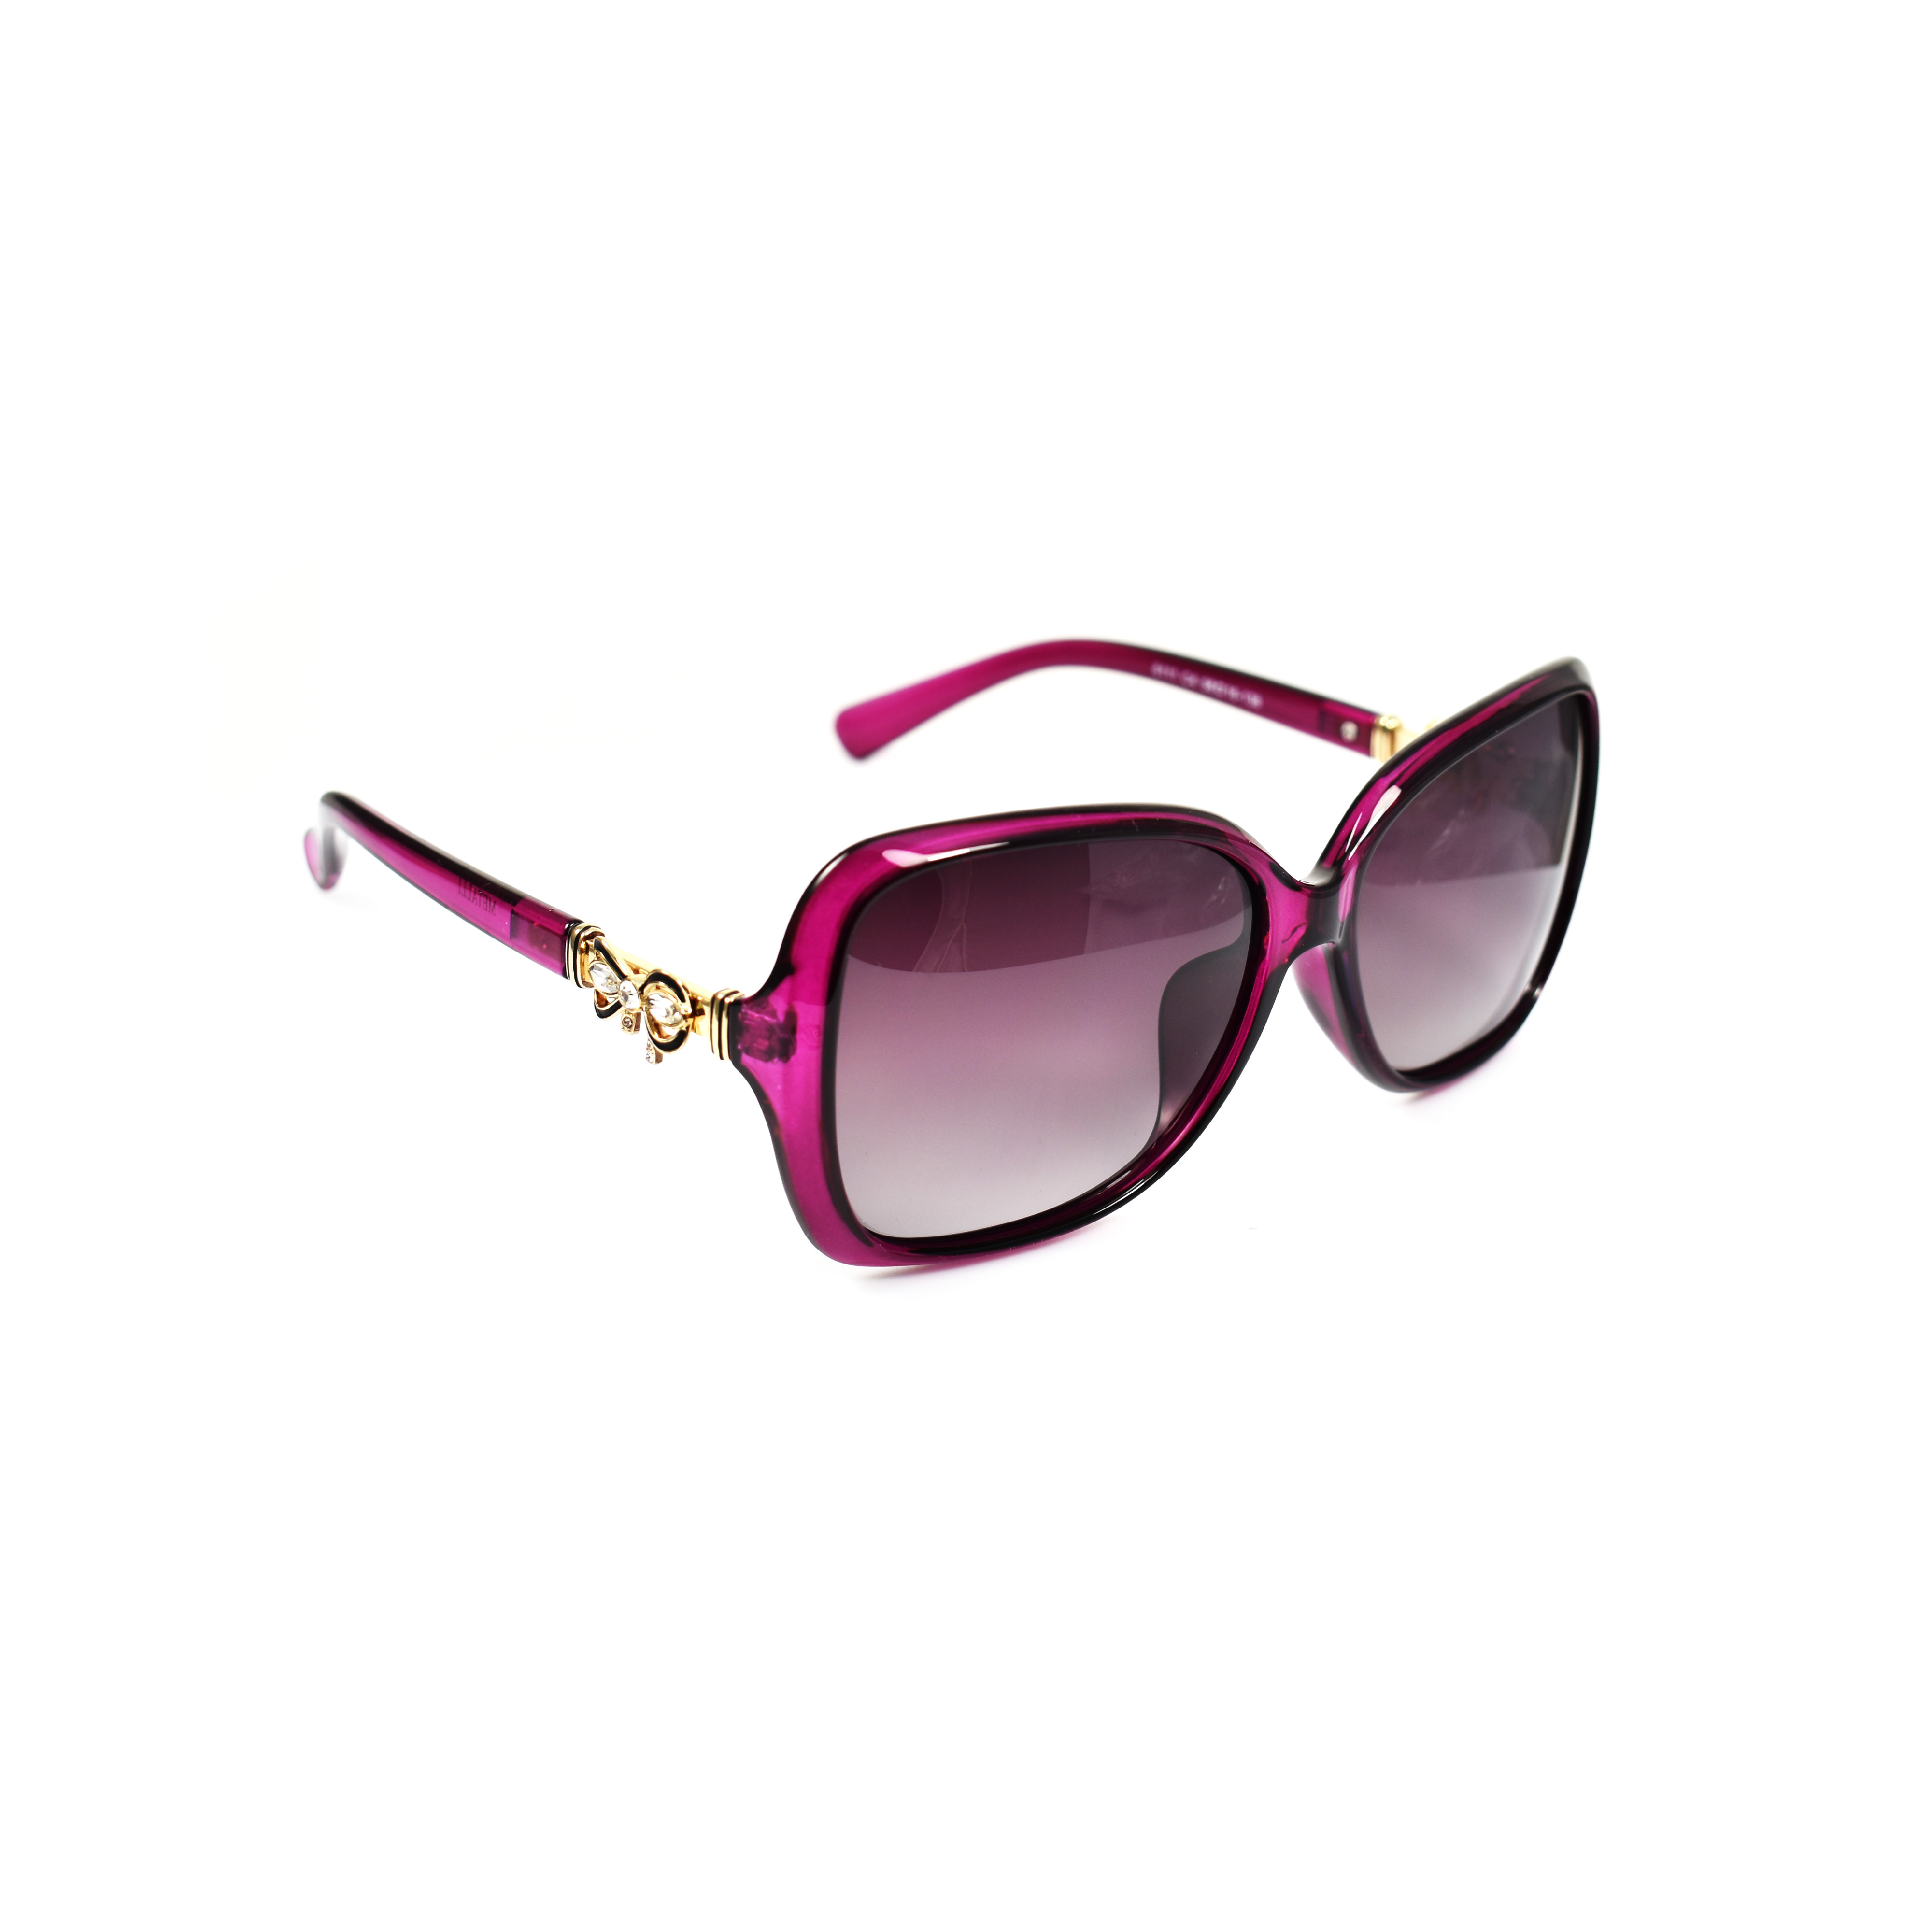 Halle Sapphire Purple Oversized Polarized Gold Detailing